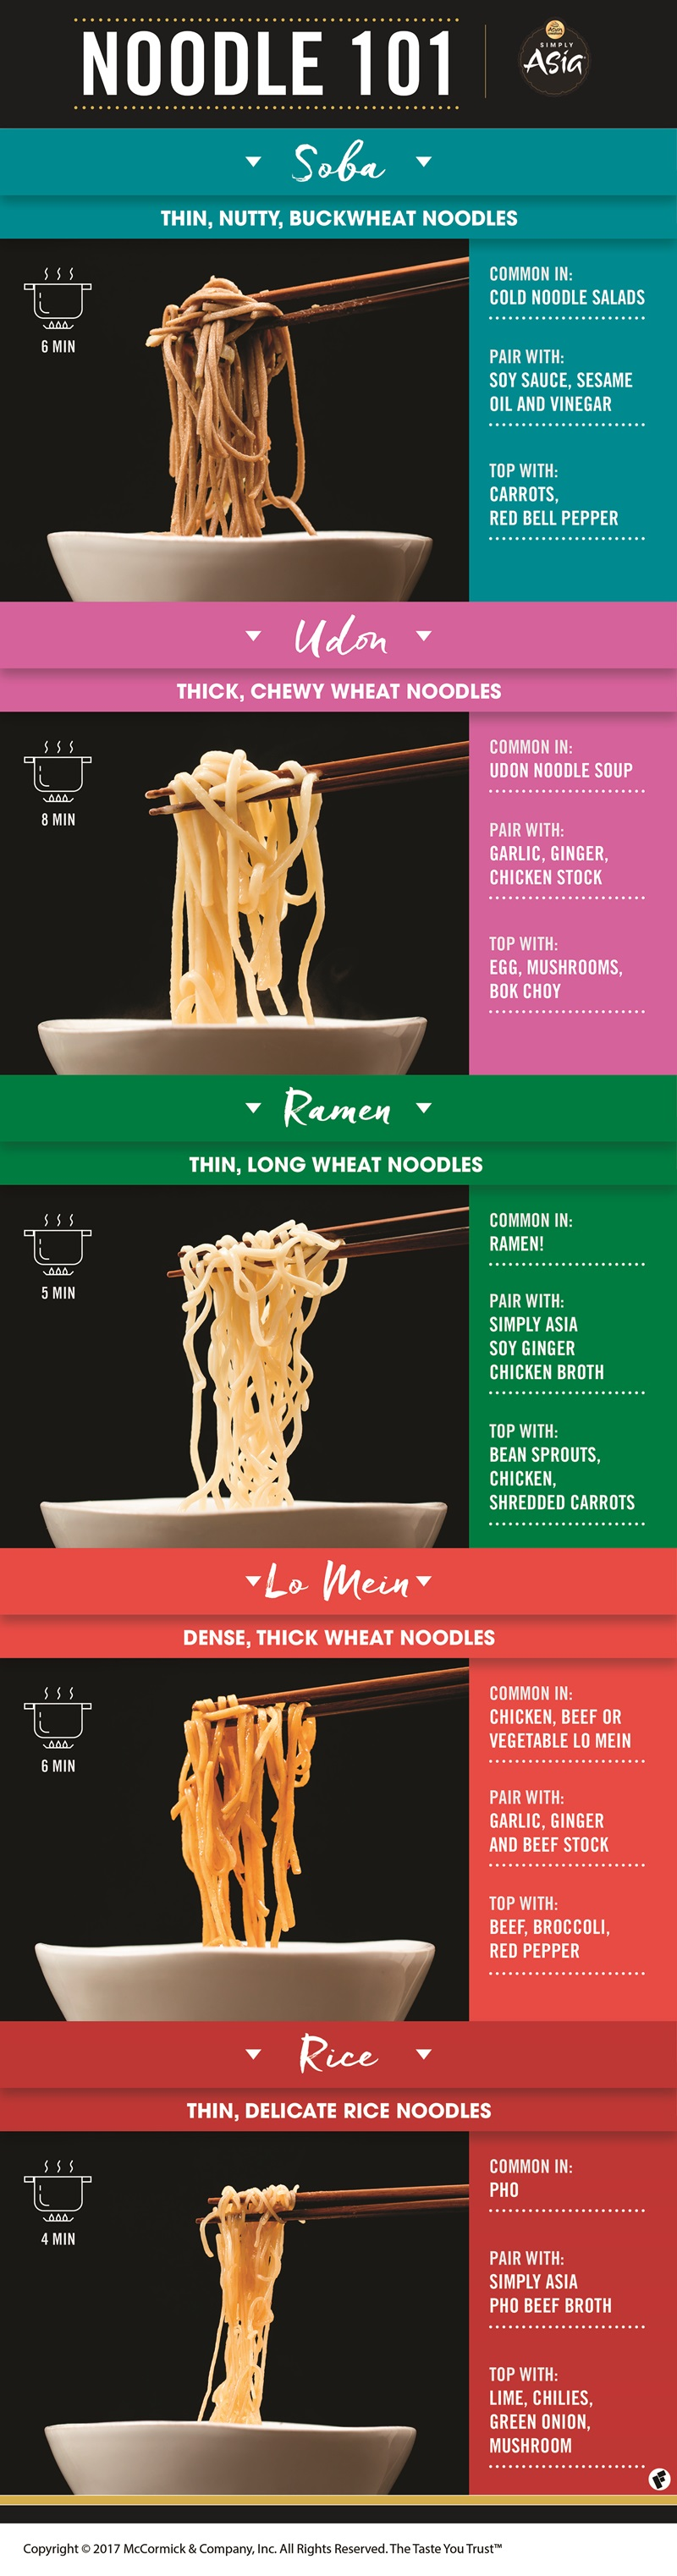 Asian Noodle Infographic + a Deconstructed Potsticker Noodles Recipe (dairy-free, egg-free, and nut-free with gluten-free and vegan options)